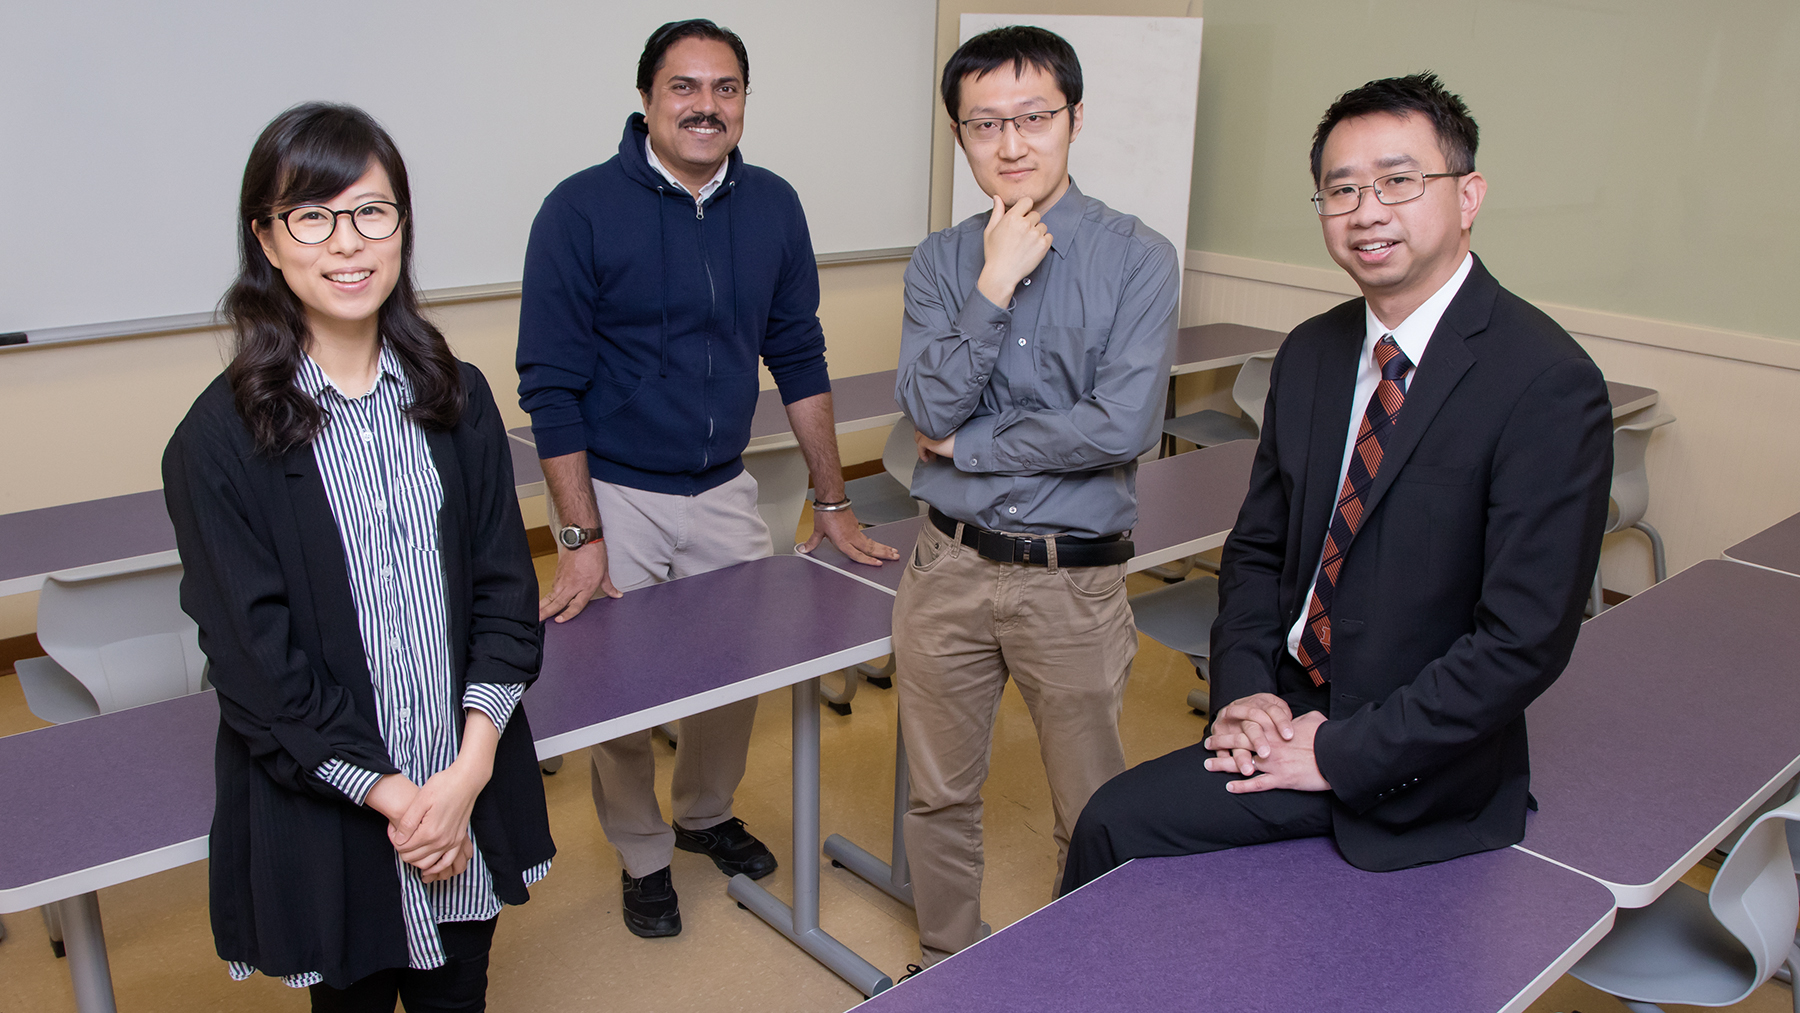 The team led by social work professor Kevin Tan, right, includes graduate students Esther Shin, Gaurav Sinha and Yang Wang. Photo by Brian Stauffer